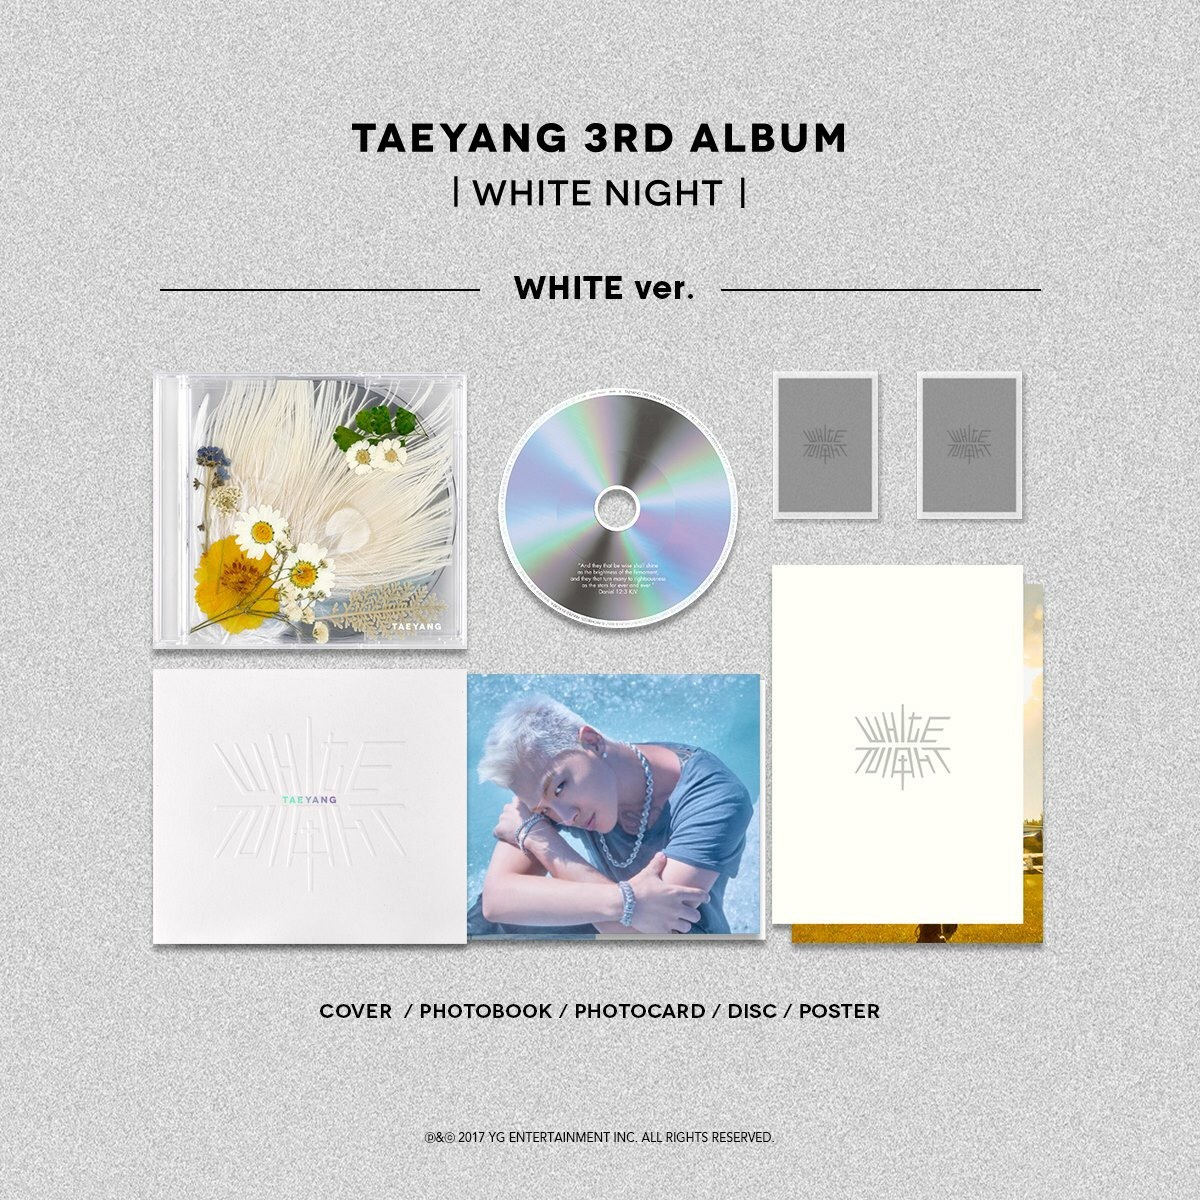 อัลบั้ม #TAEYANG - TAEYANG 3RD ALBUM [WHITE NIGHT] : WHITE VER.